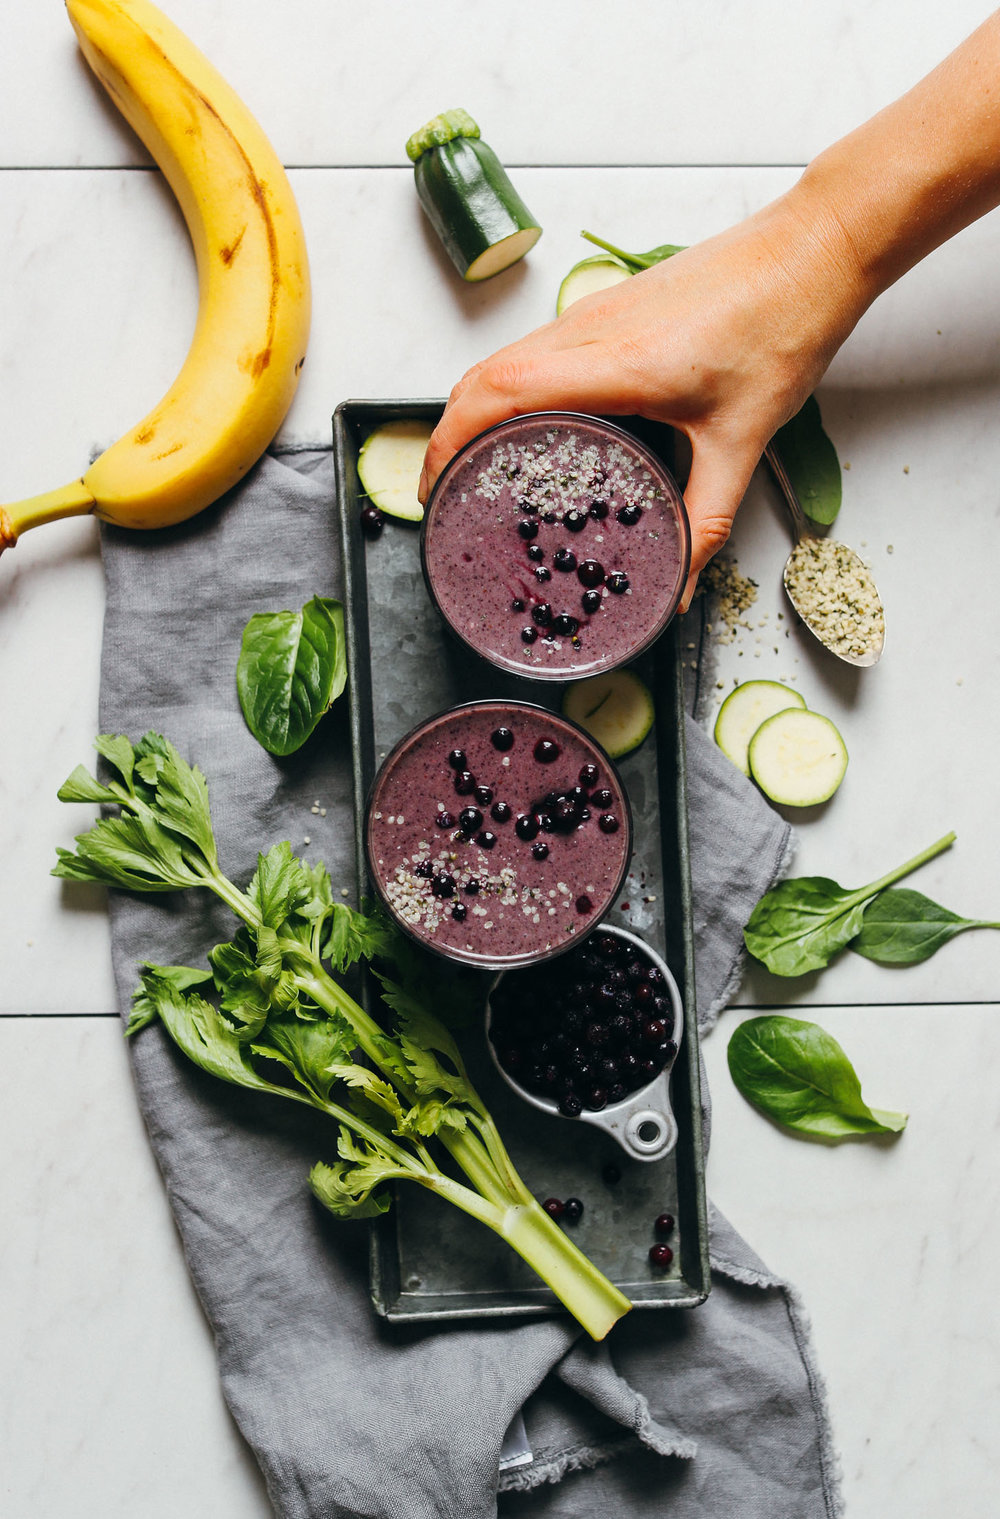 SUPER-HEALTHY-Zucchini-Berry-Smoothie-8-nutrient-packed-ingredients-1-blender-5-minutes-SO-CREAMY-vegan-glutenfree-raw-zucchini-smoothie-plantbased-recipe-minimalistbaker-79.jpg